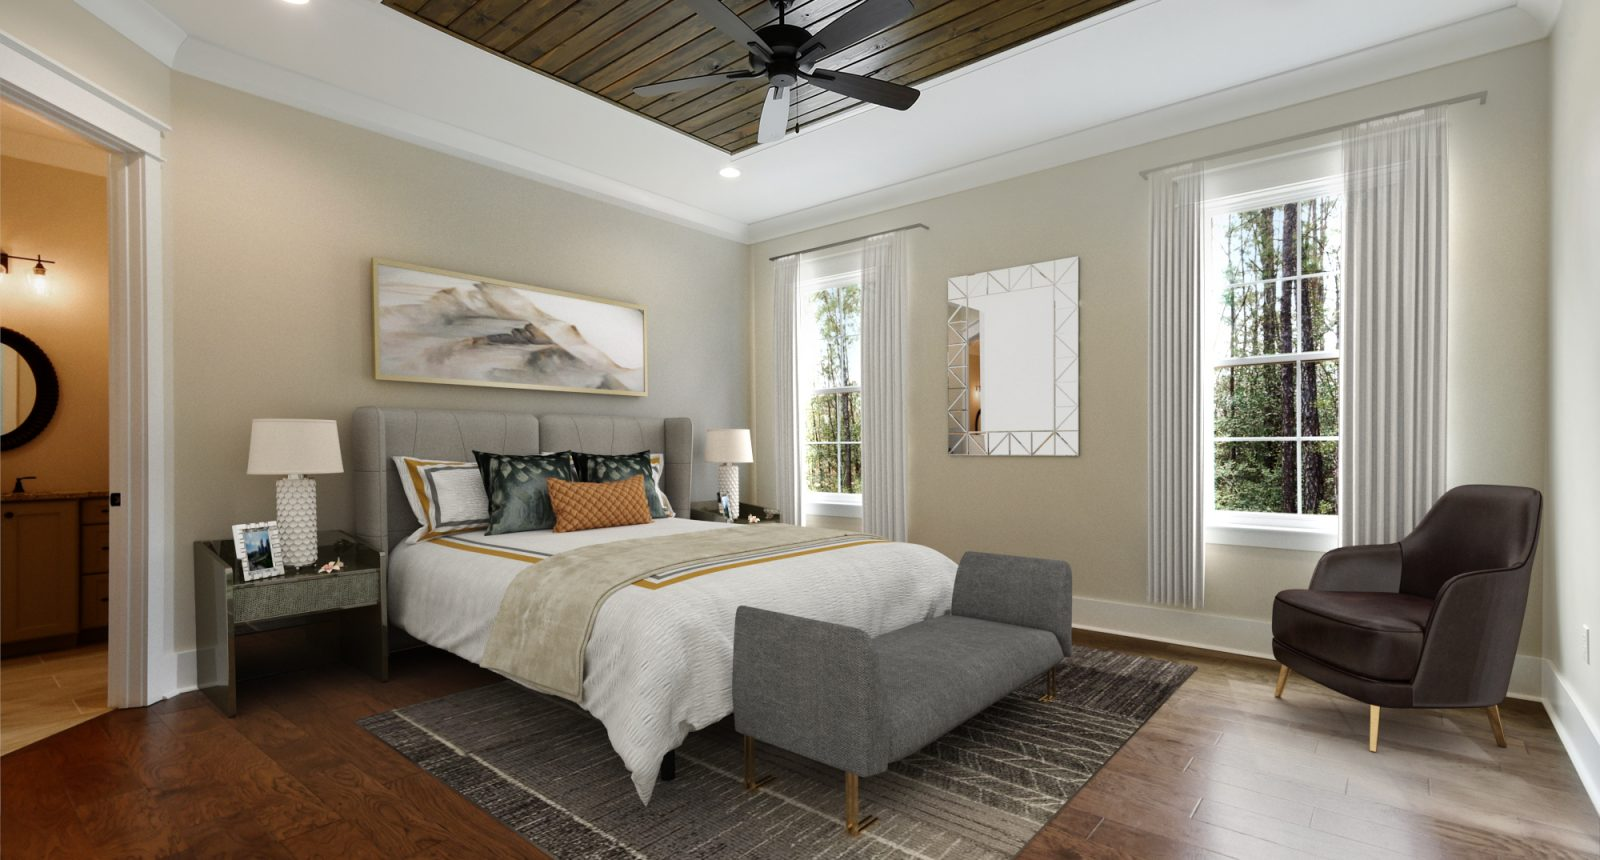 Master bedroom with wood details